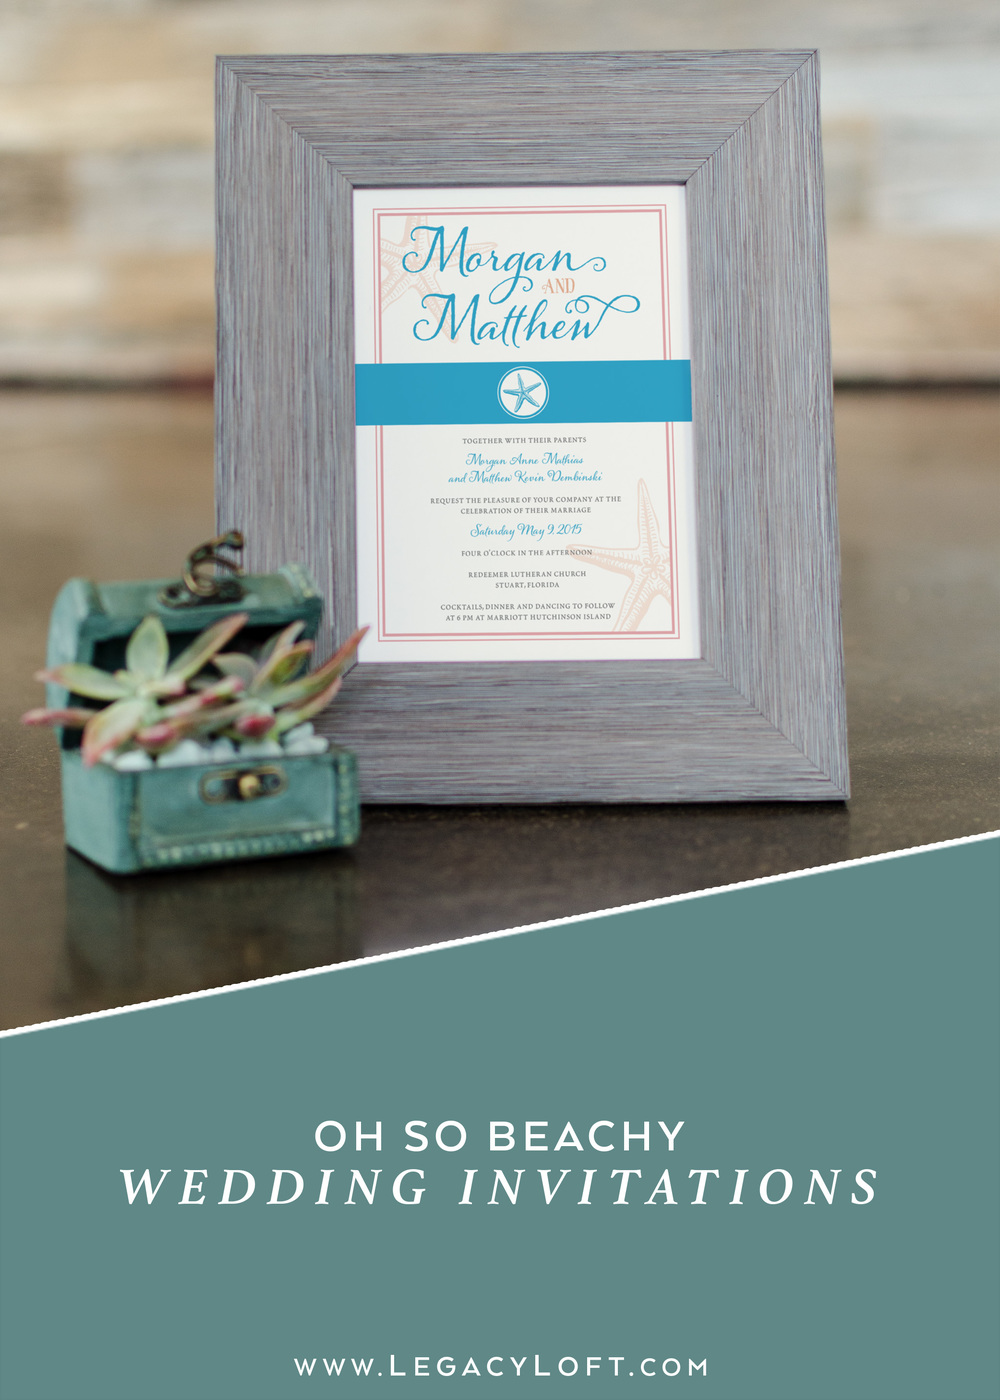 With A Beachy Lilly Pulitzer Inspired Theme This Invitation Suite Couldnt Be Any More Perfect